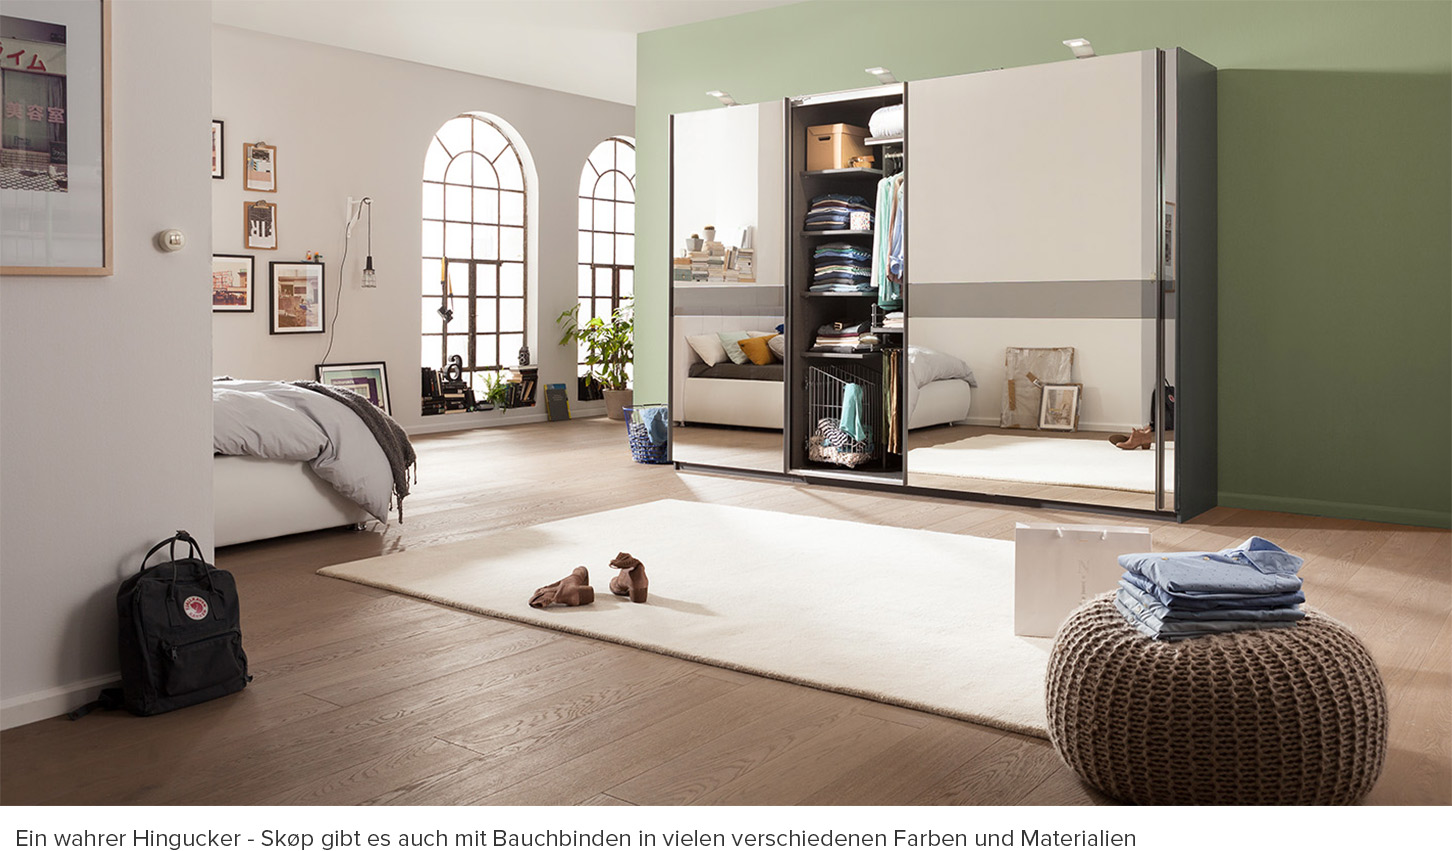 sk p dein stil dein schrank home24. Black Bedroom Furniture Sets. Home Design Ideas